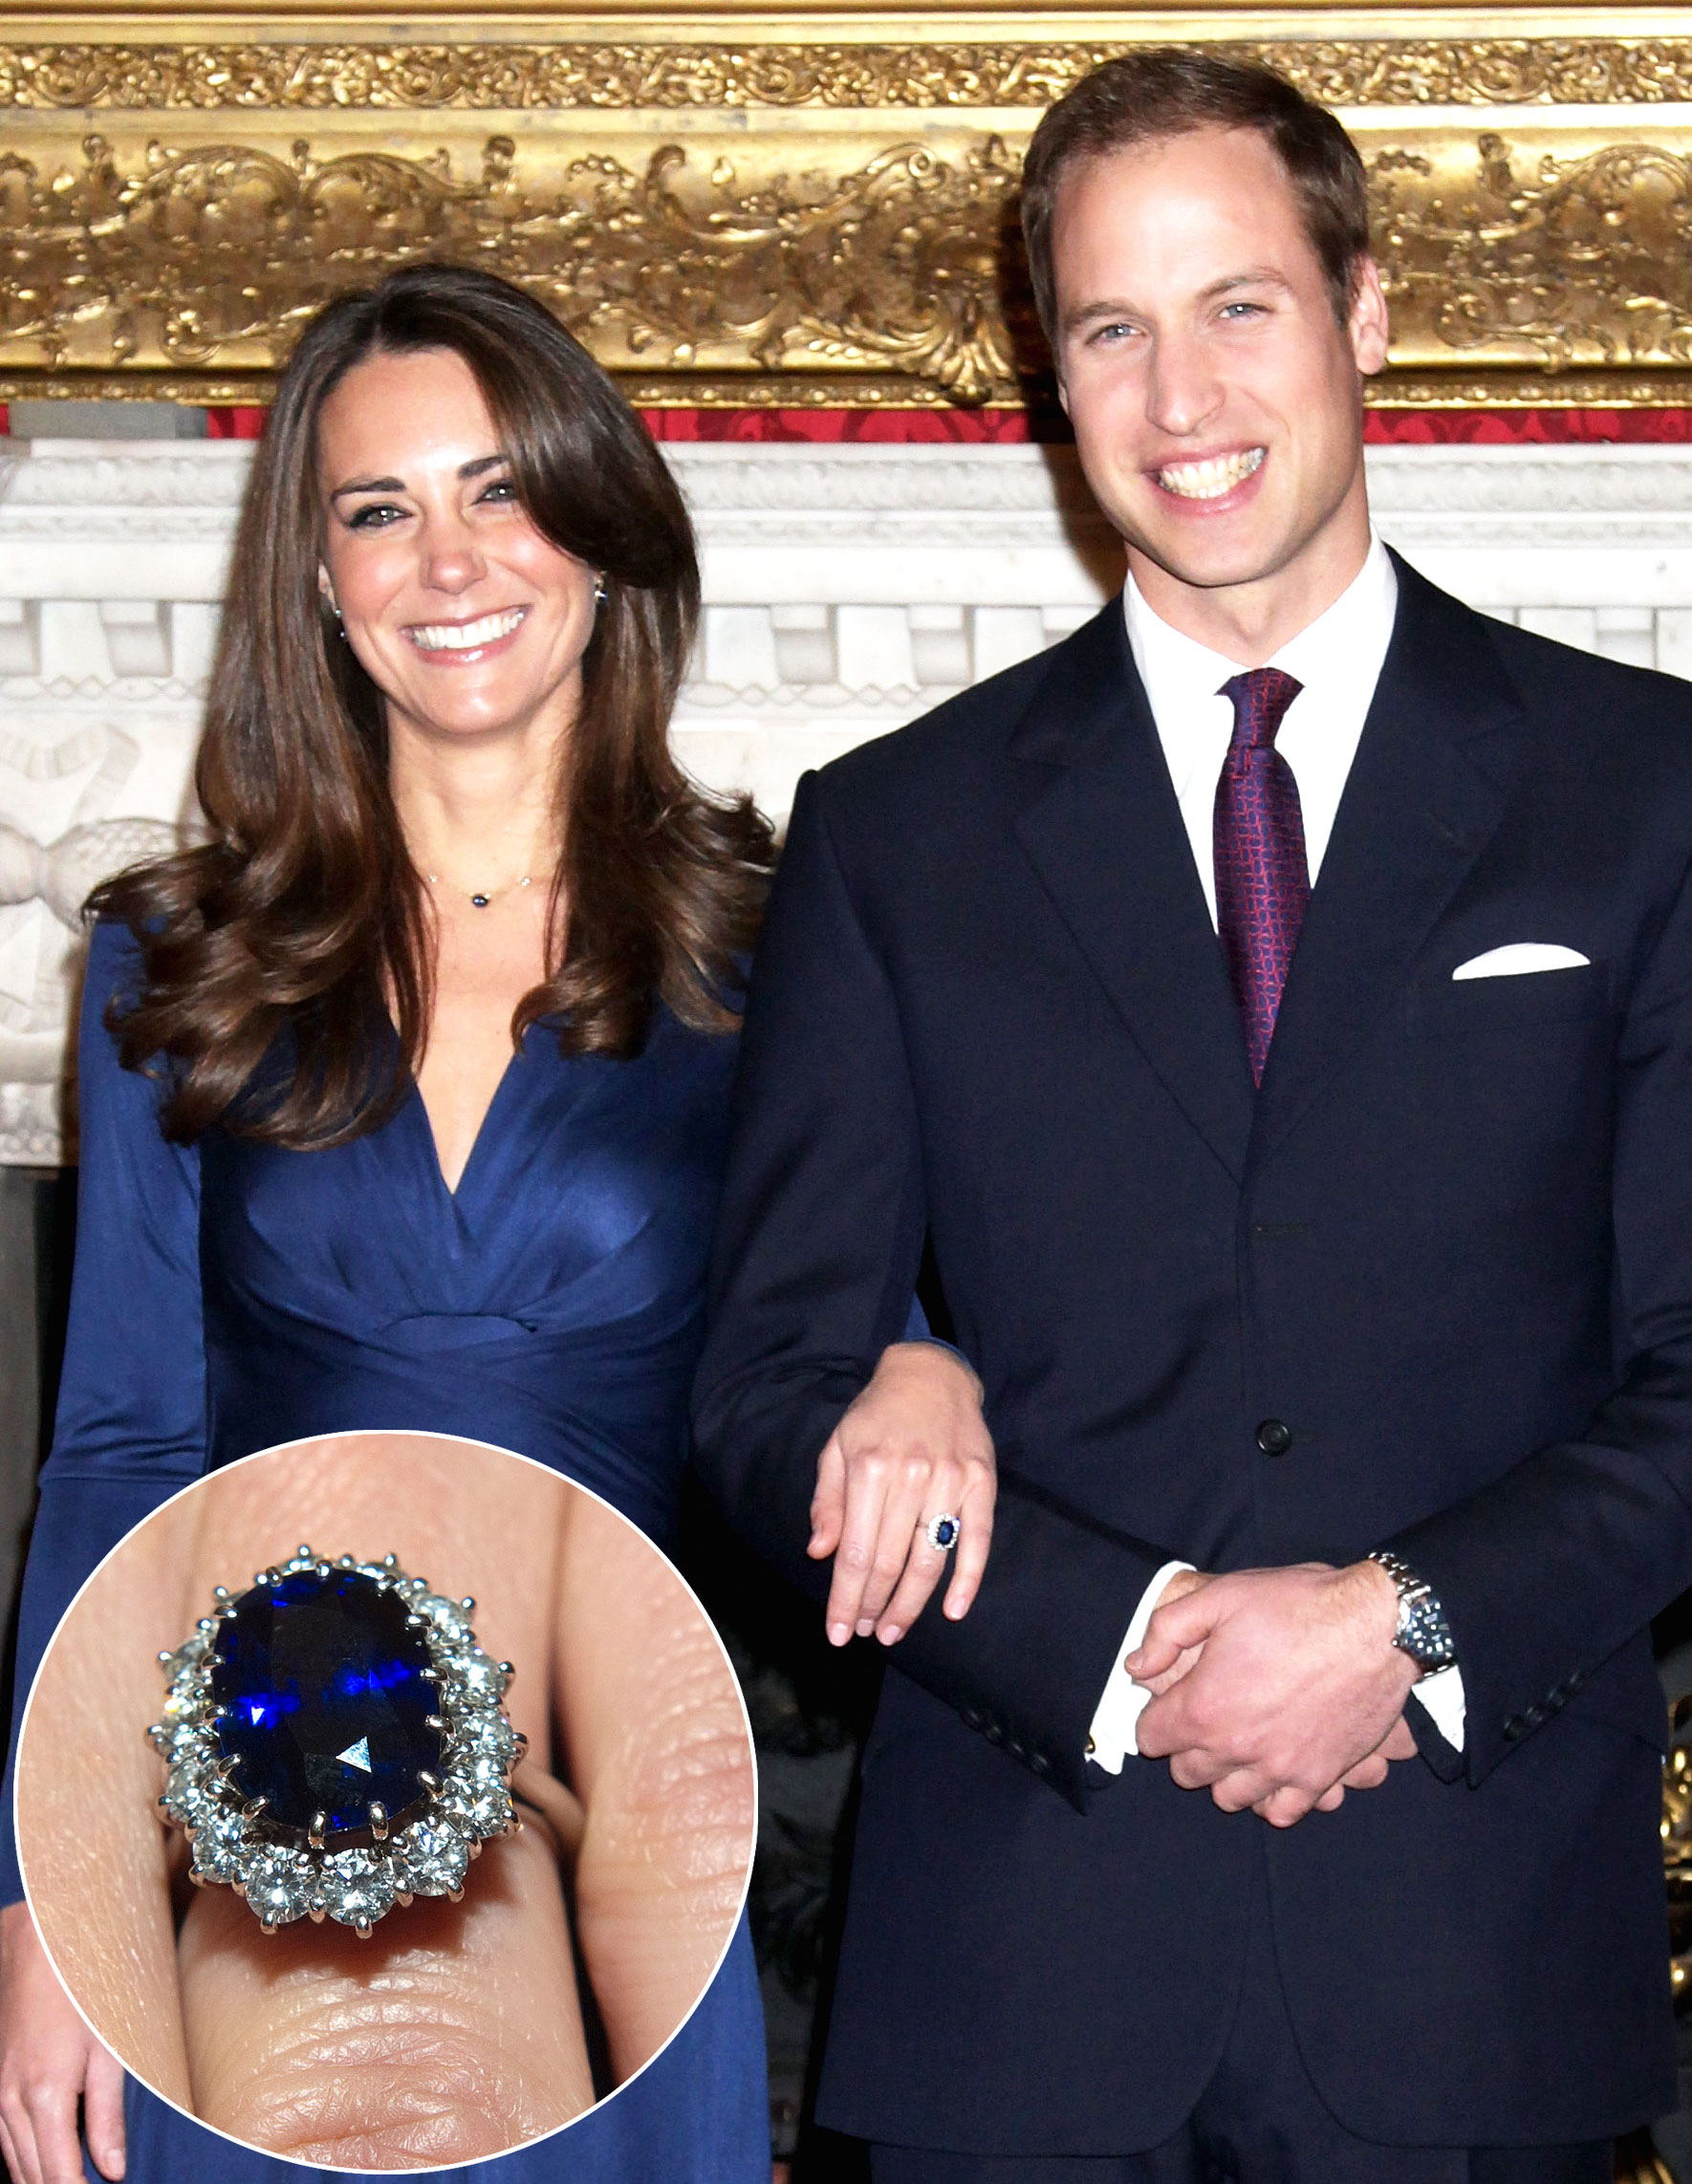 of wedding queen queens rings engagement princess getty weddings story main royal